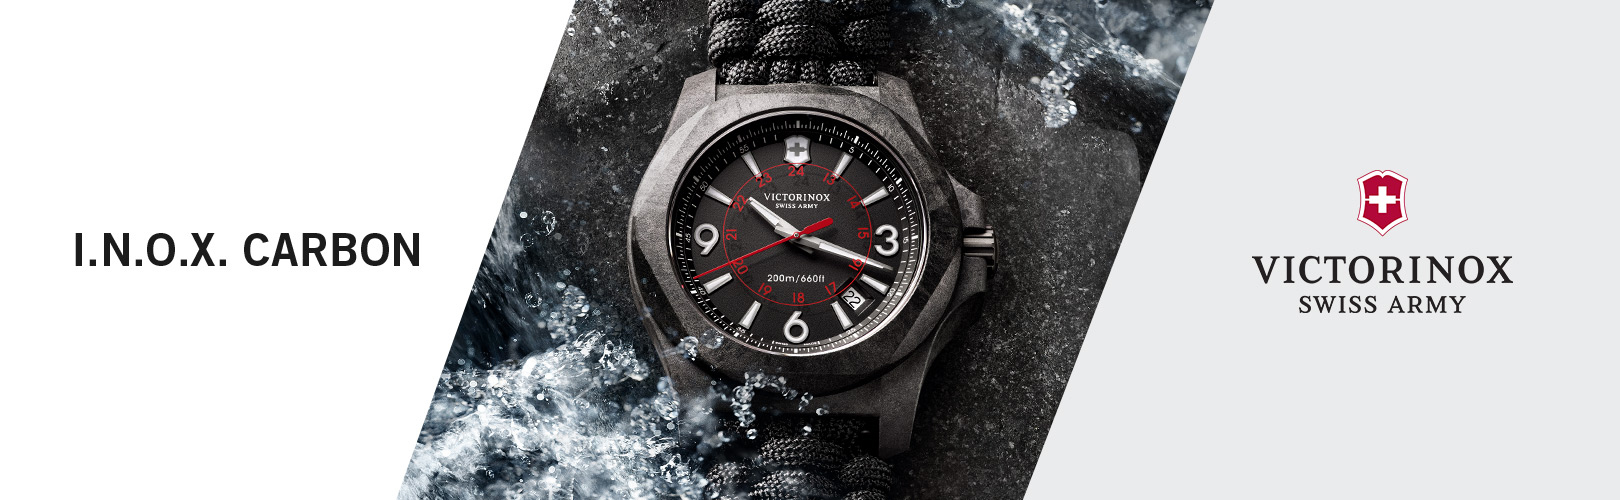 swiss army watches highlands ranch, denver co